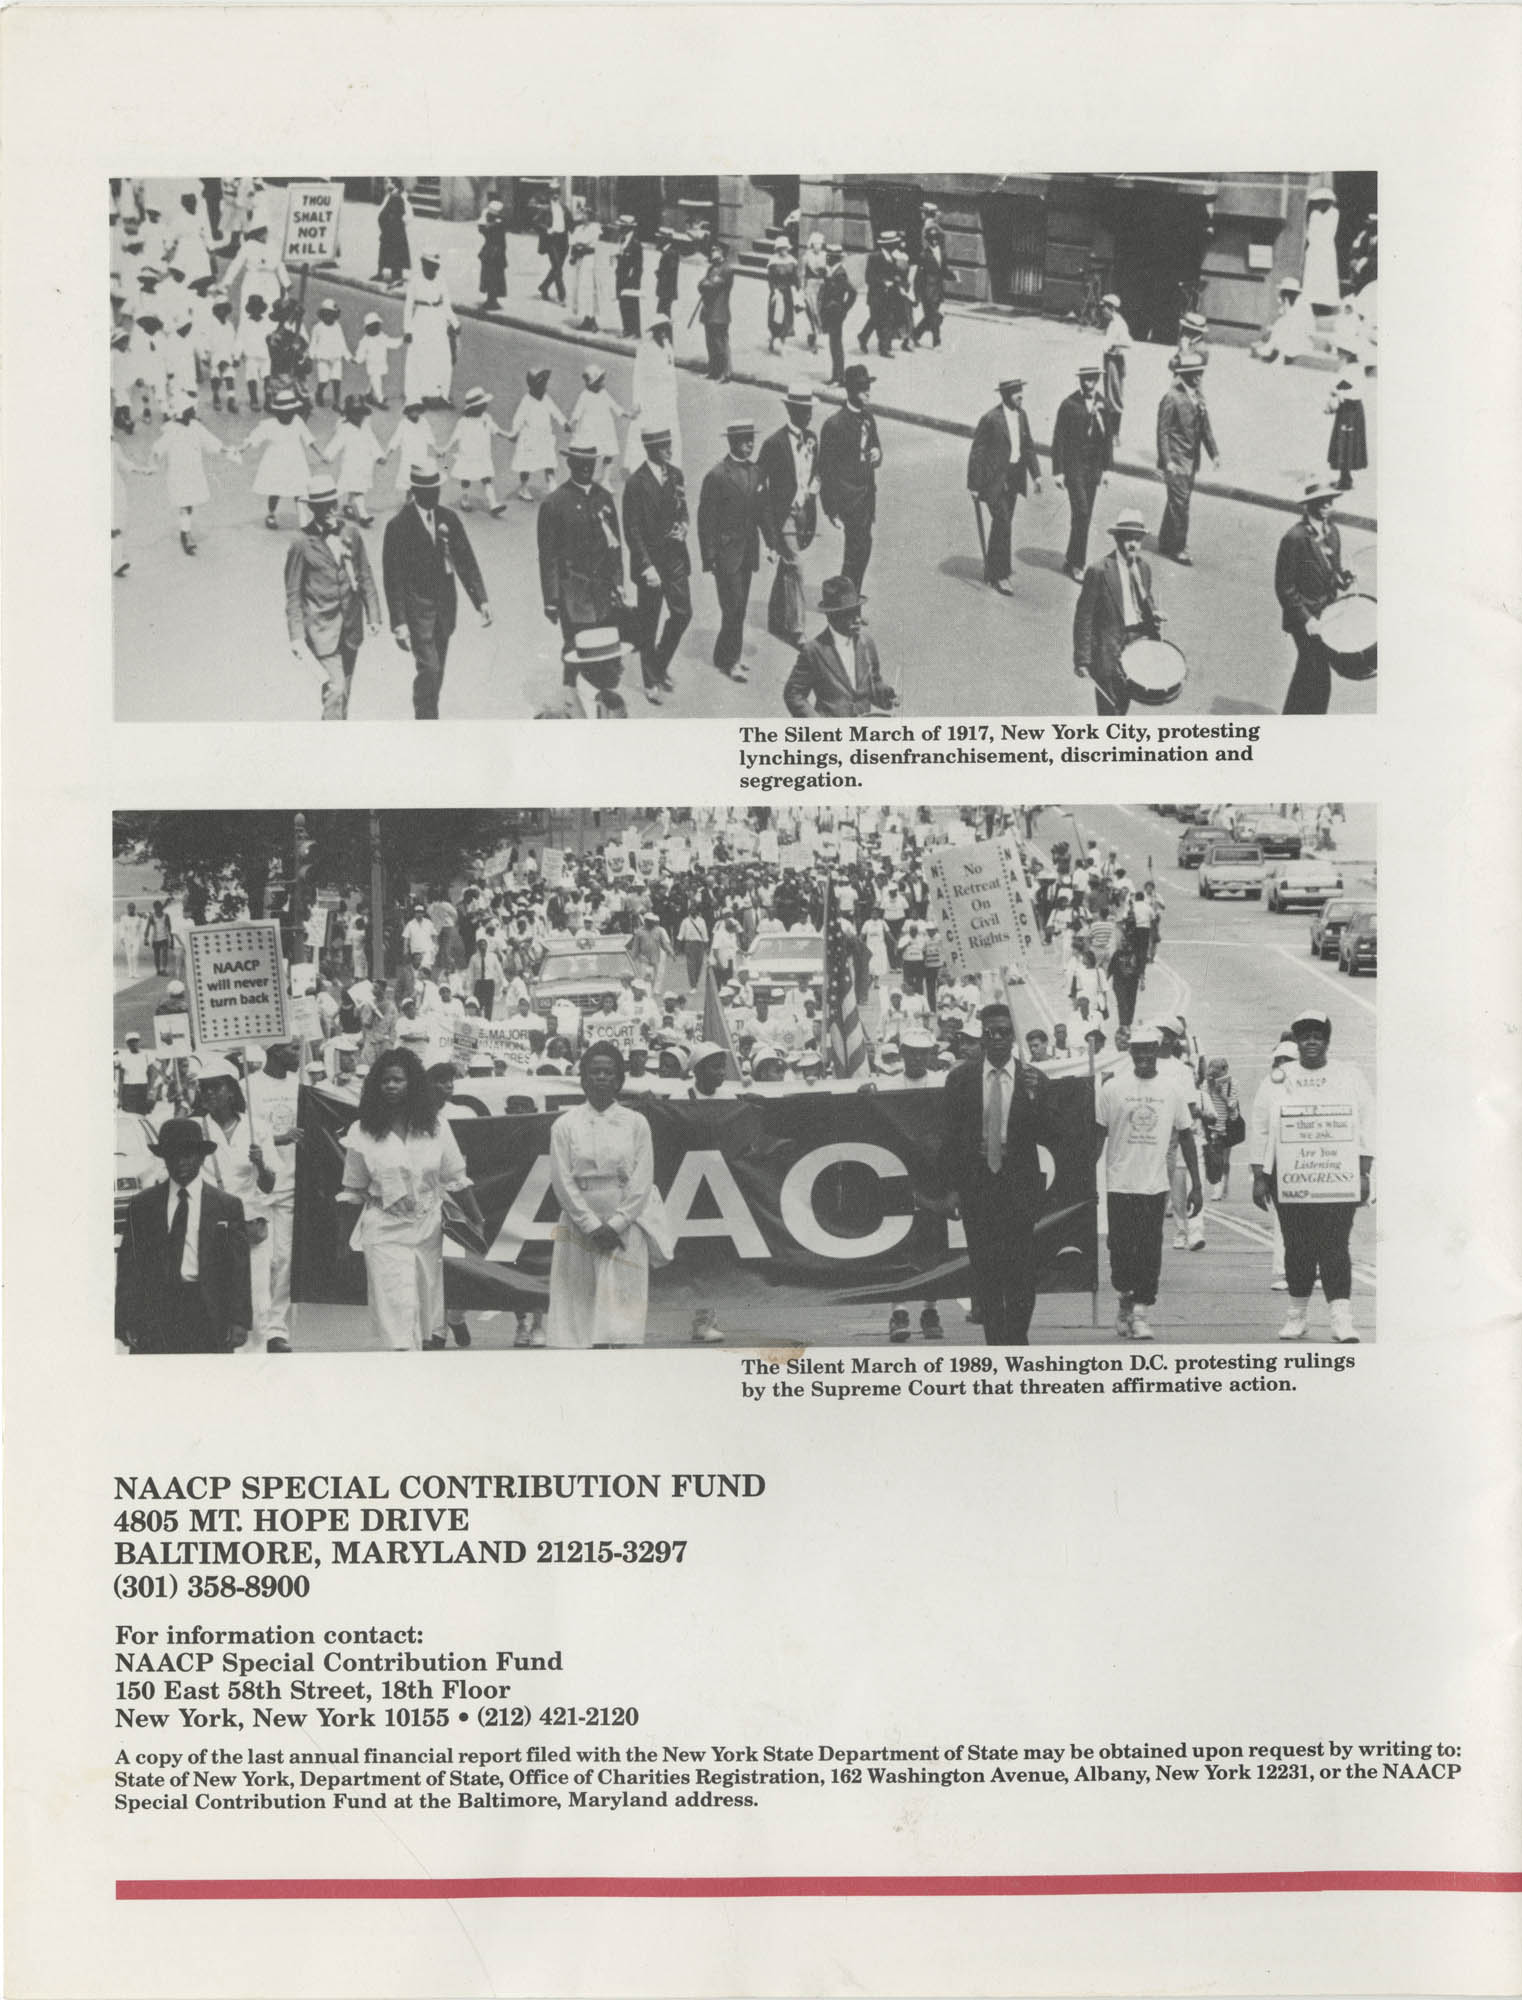 Program Report 1990, Special Contribution Fund, NAACP, Back Cover